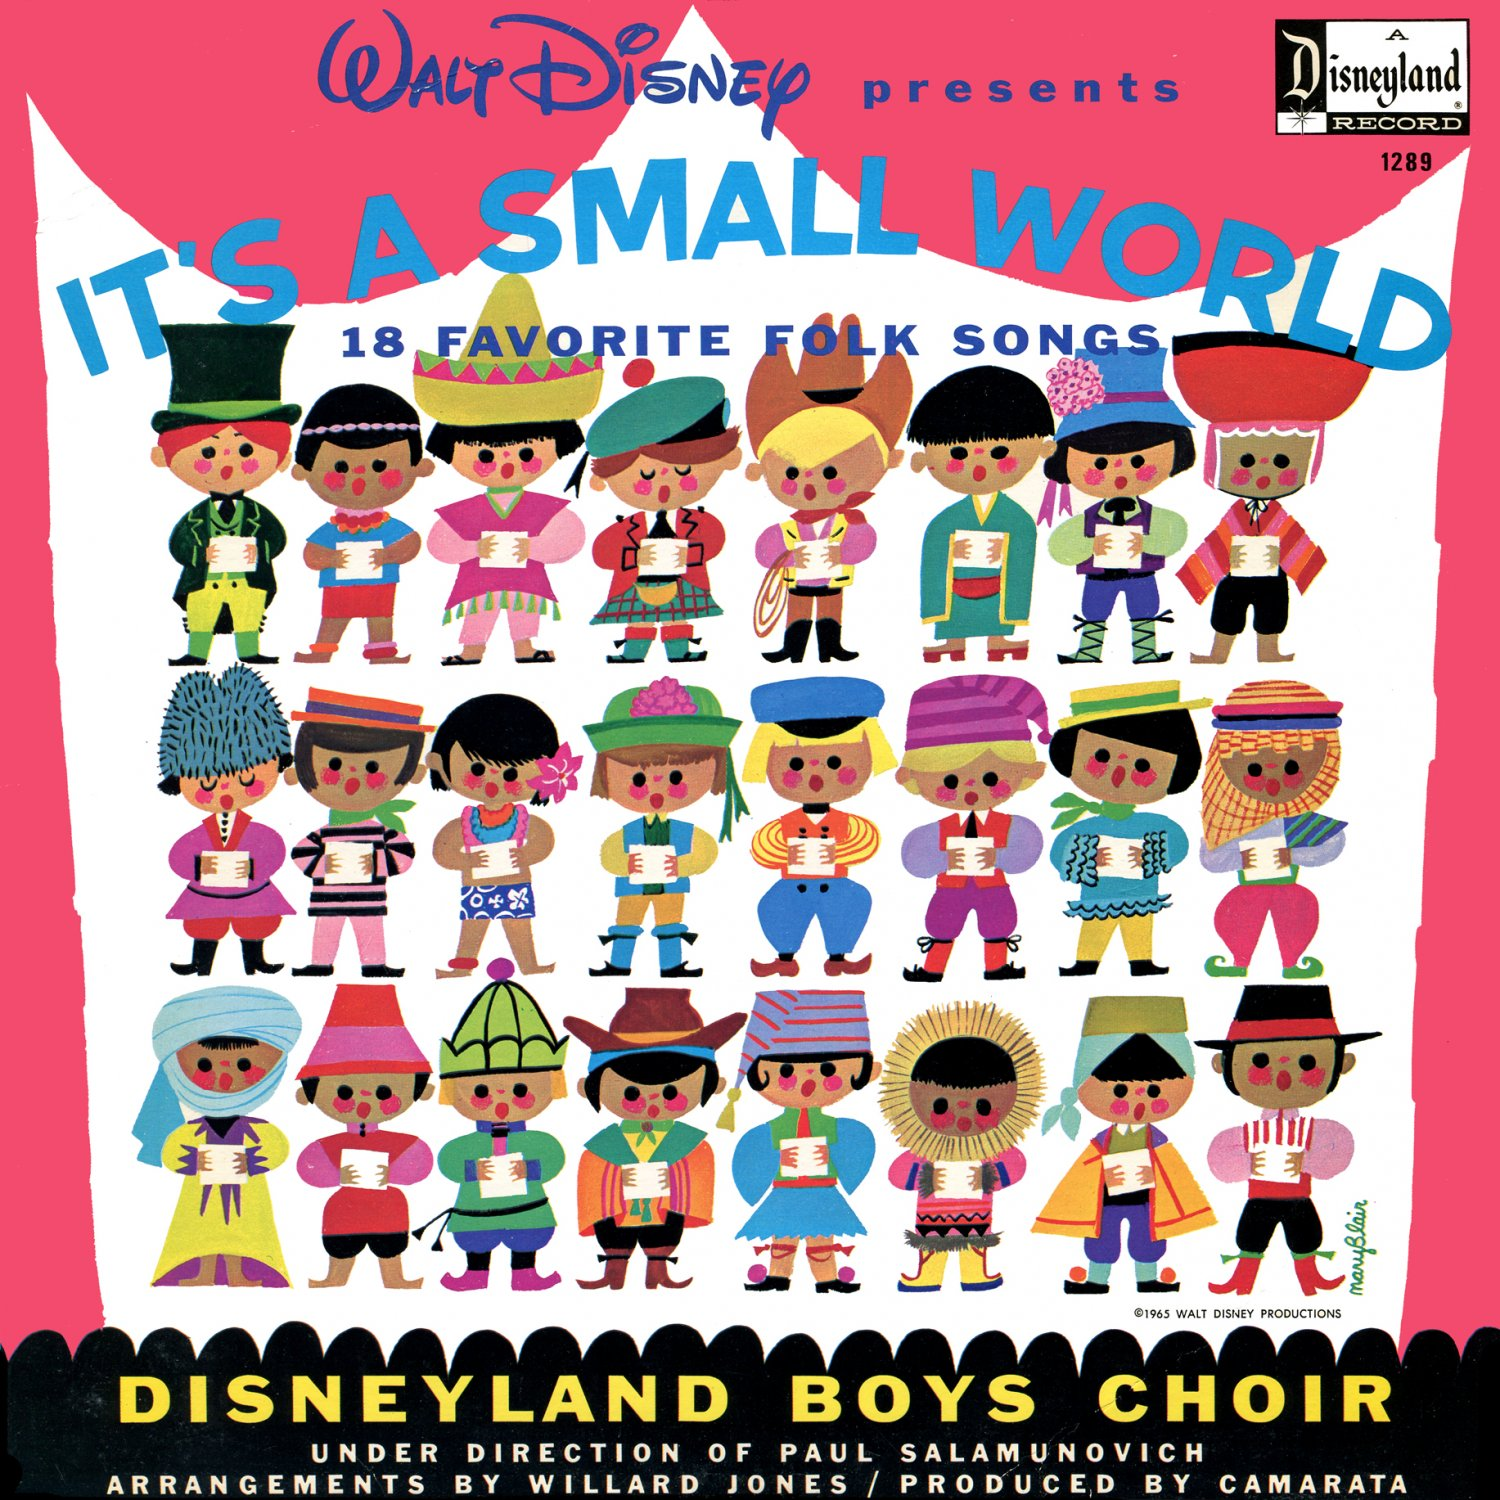 Walt Disney's It's A Small World - 18 Favorite Folk Songs, Disneyland Boys Choir LP/CD